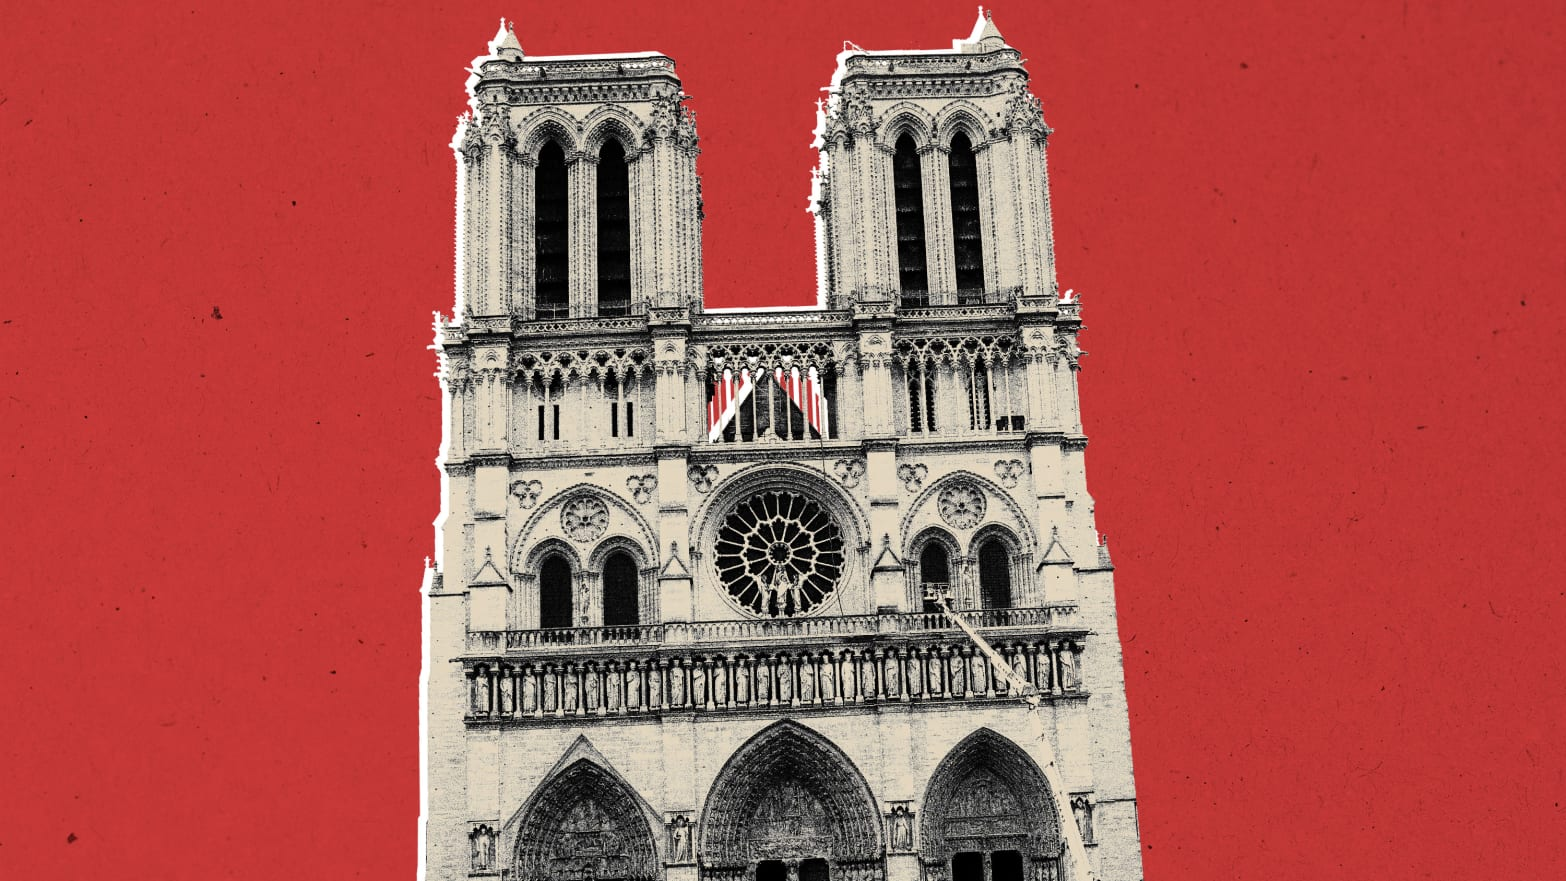 Notre Dame Fire: All the Times It was Almost Destroyed in the Past